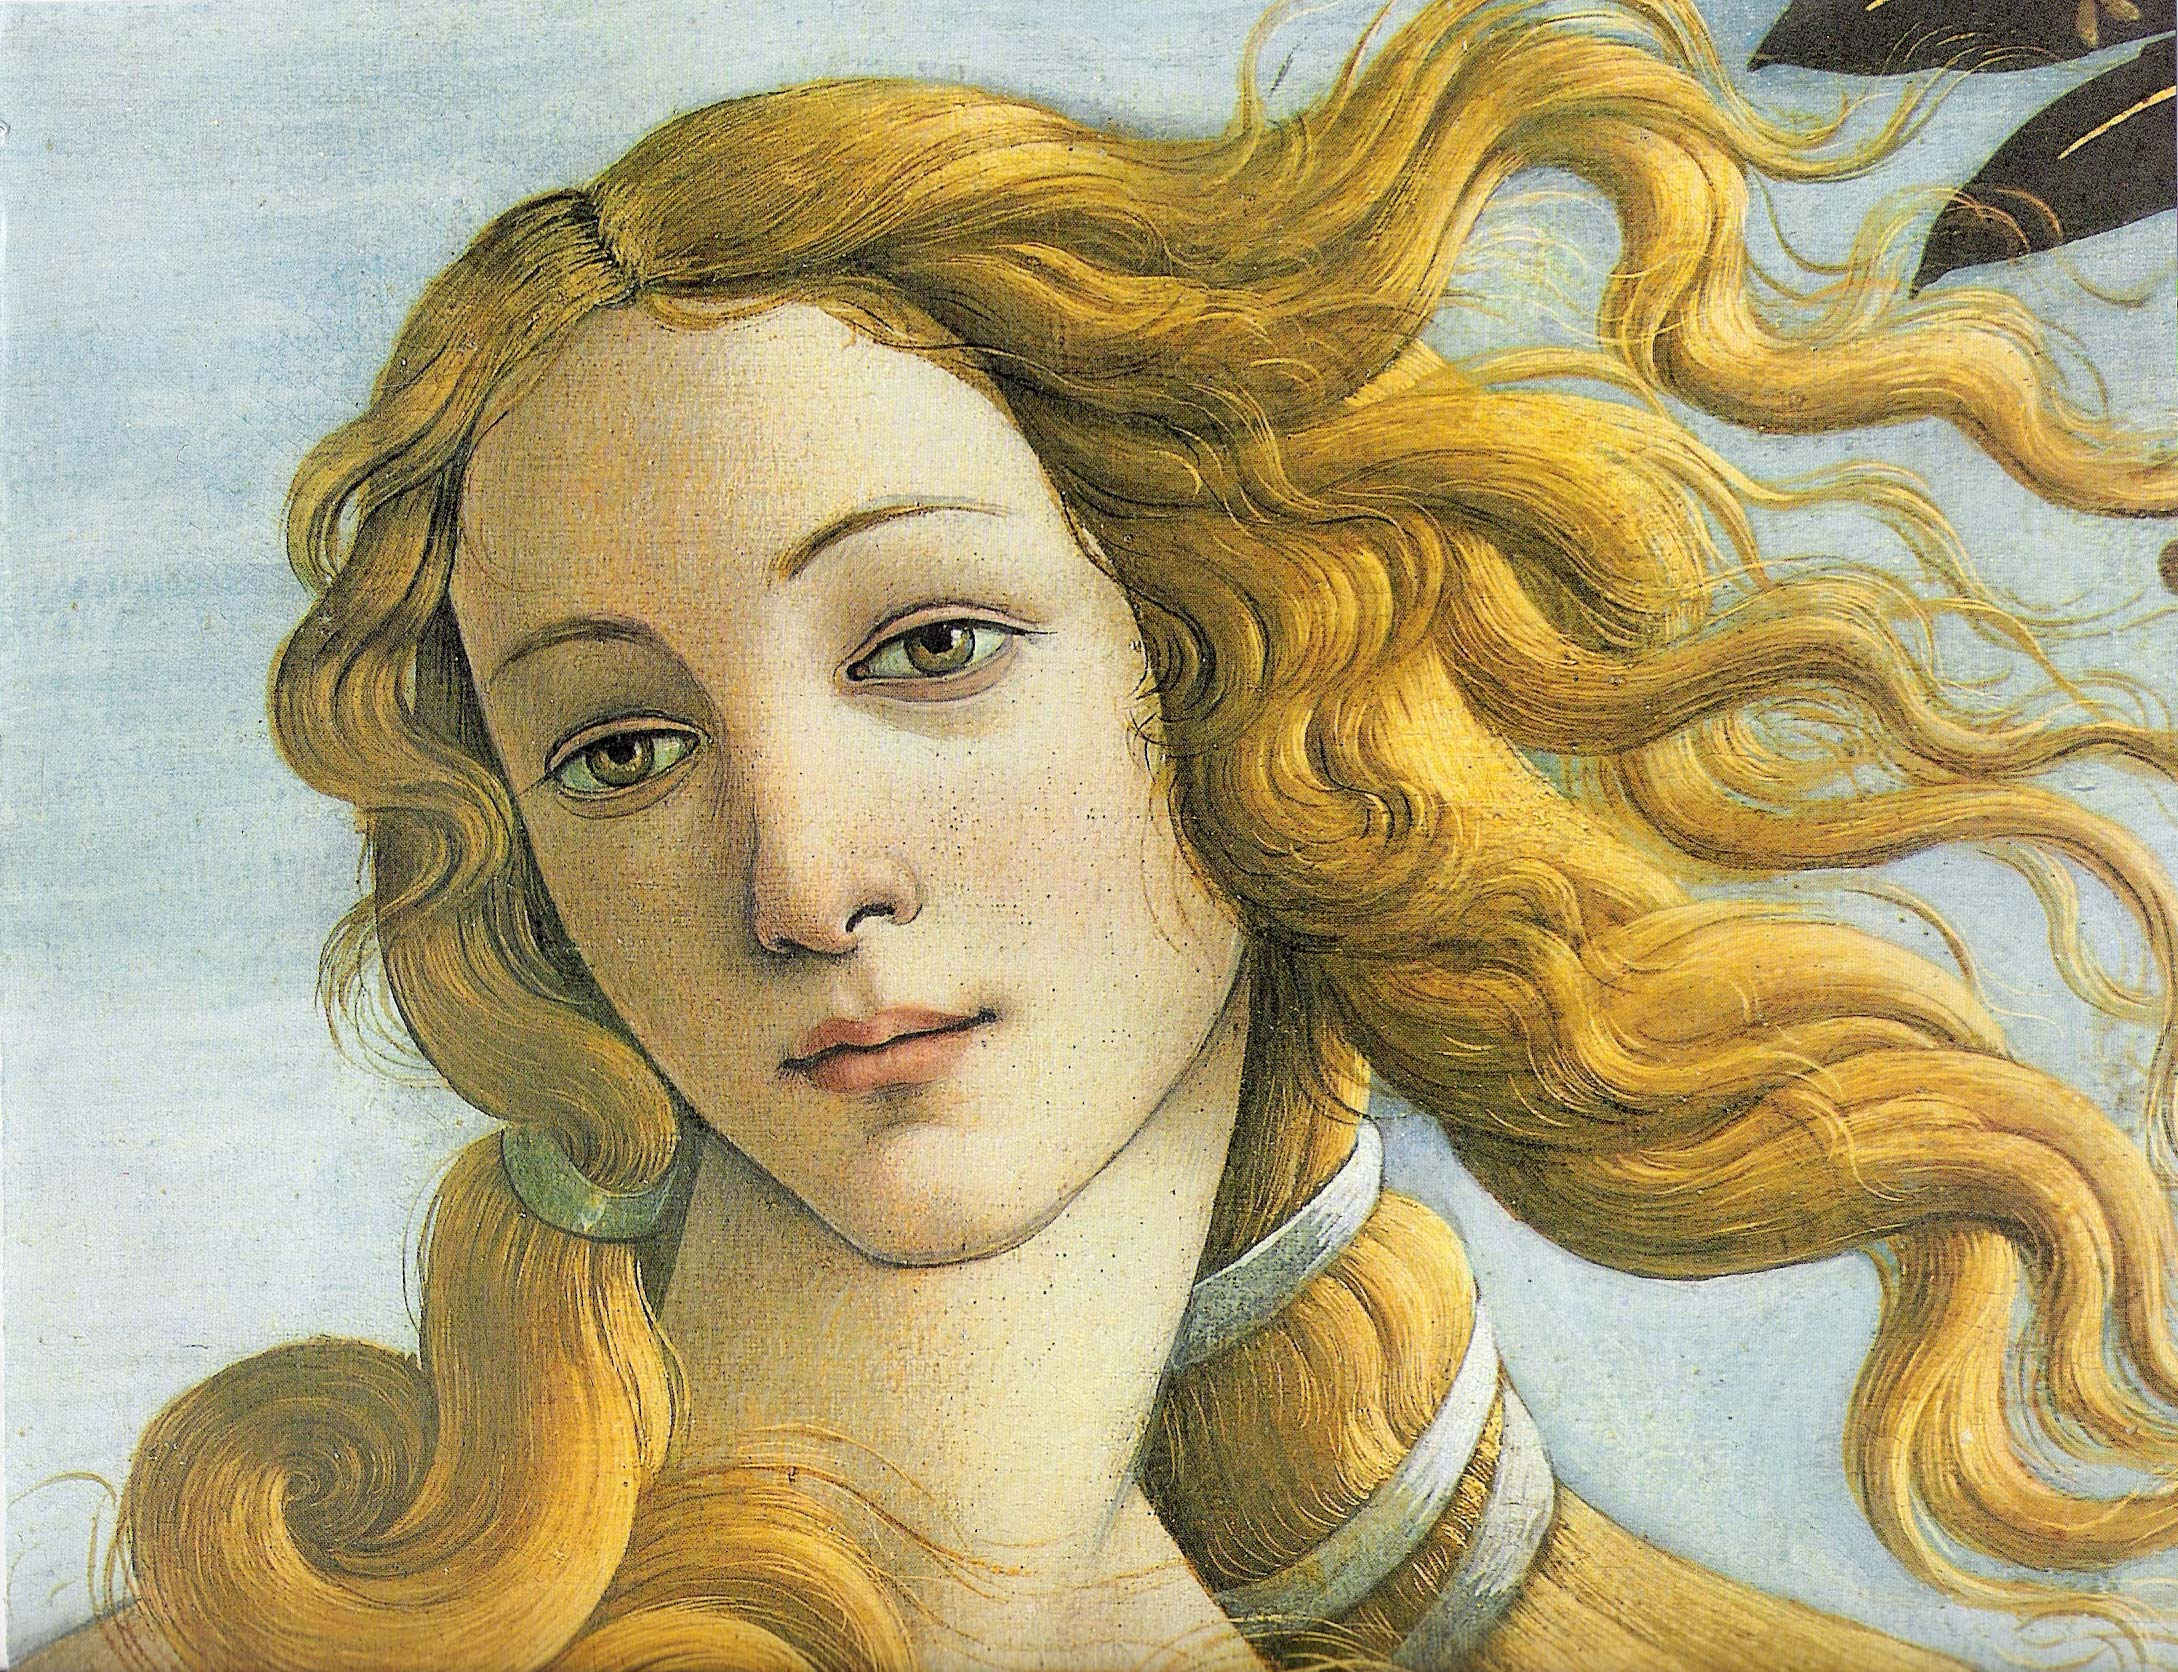 ART AND BEAUTY - Botticelli painted Venus, the goddess of beauty with a newborn's delicate nearly translucent skin. The brightness, clarity and freshness of her complexion convey good health and youthfulness.Male skin is thicker and has rougher texture than female skin. It needs slightly different care, but even men want to have clear and healthy skin - free from eruptions and blemishes.